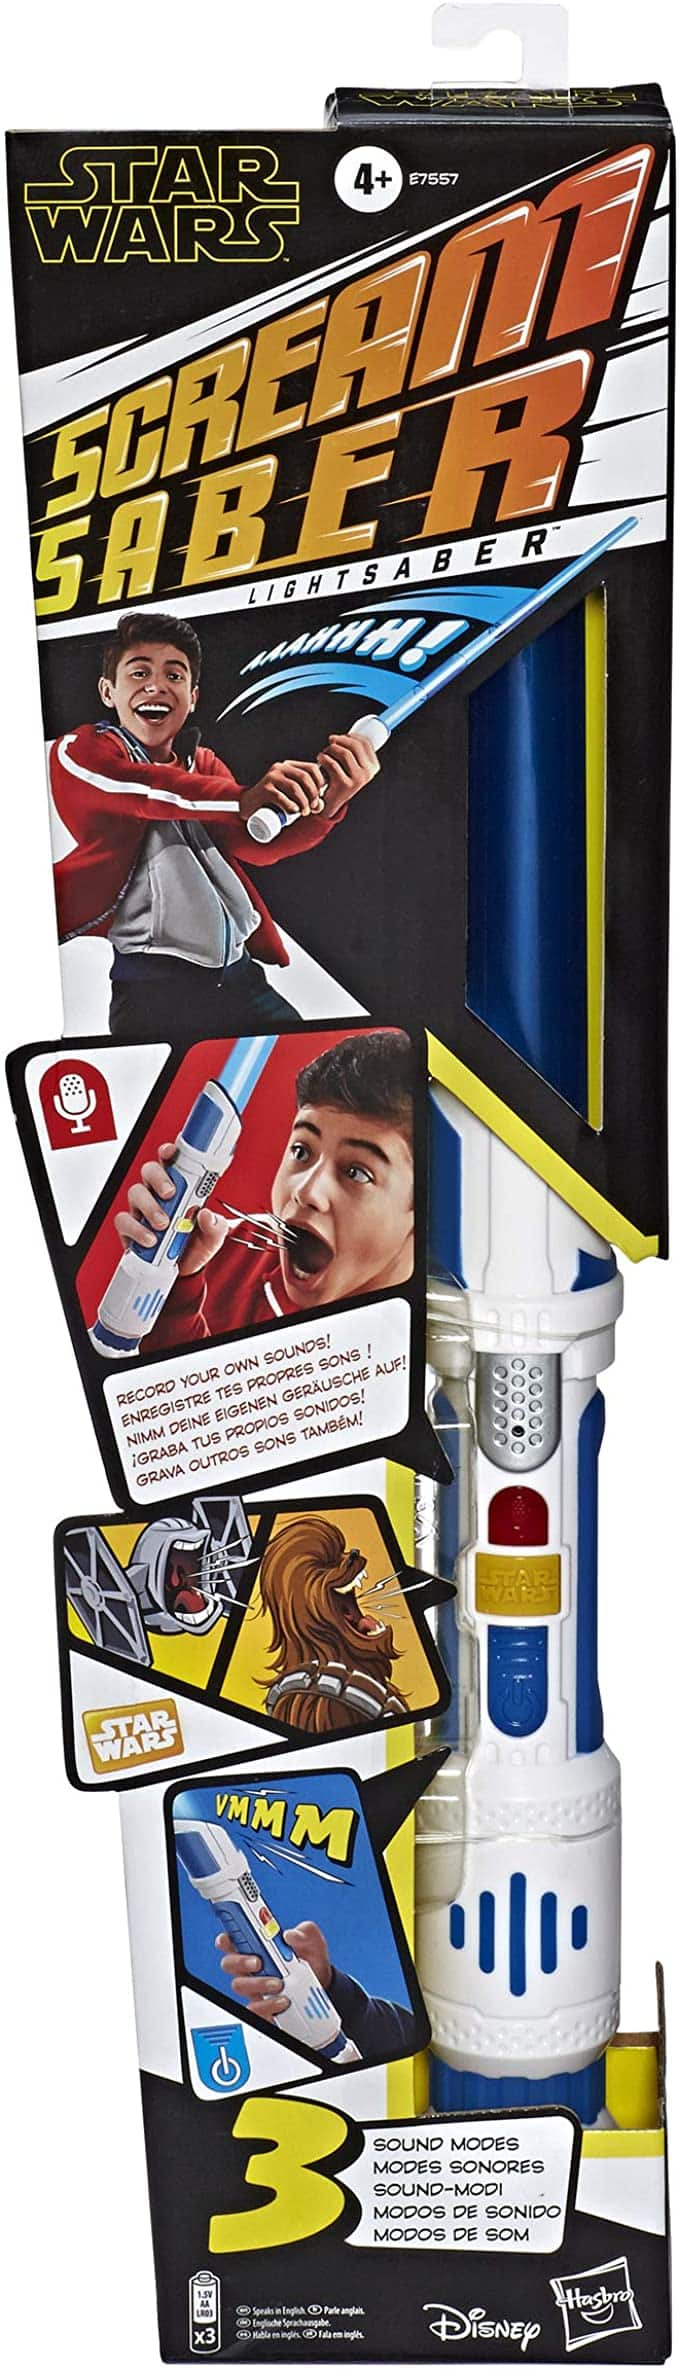 Star Wars Scream Saber Lightsaber Toy